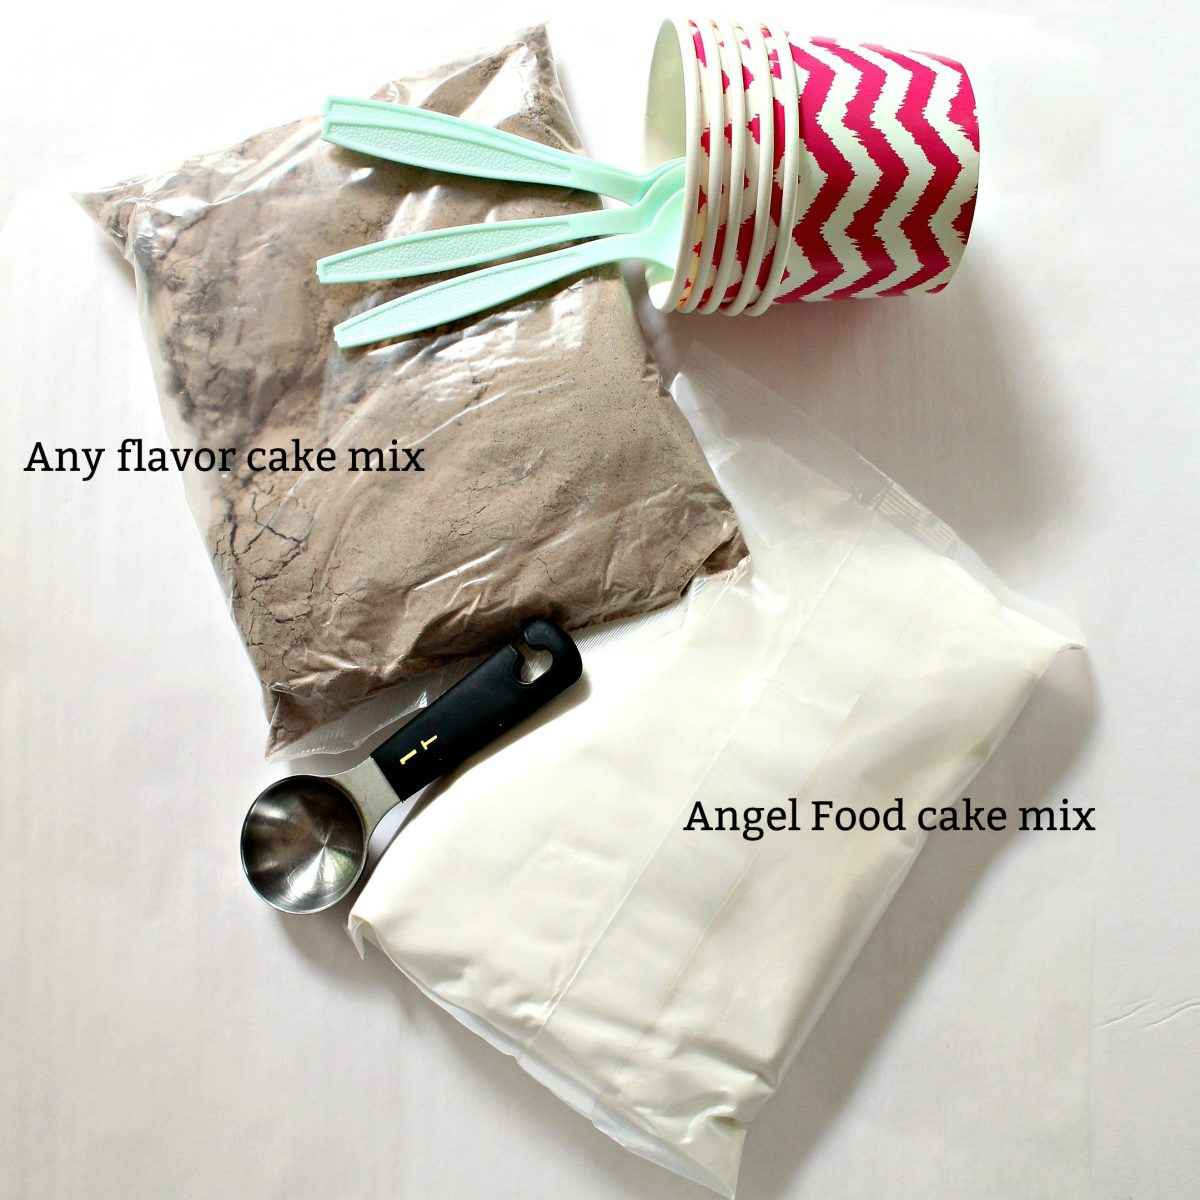 Recipe ingredients with text labels